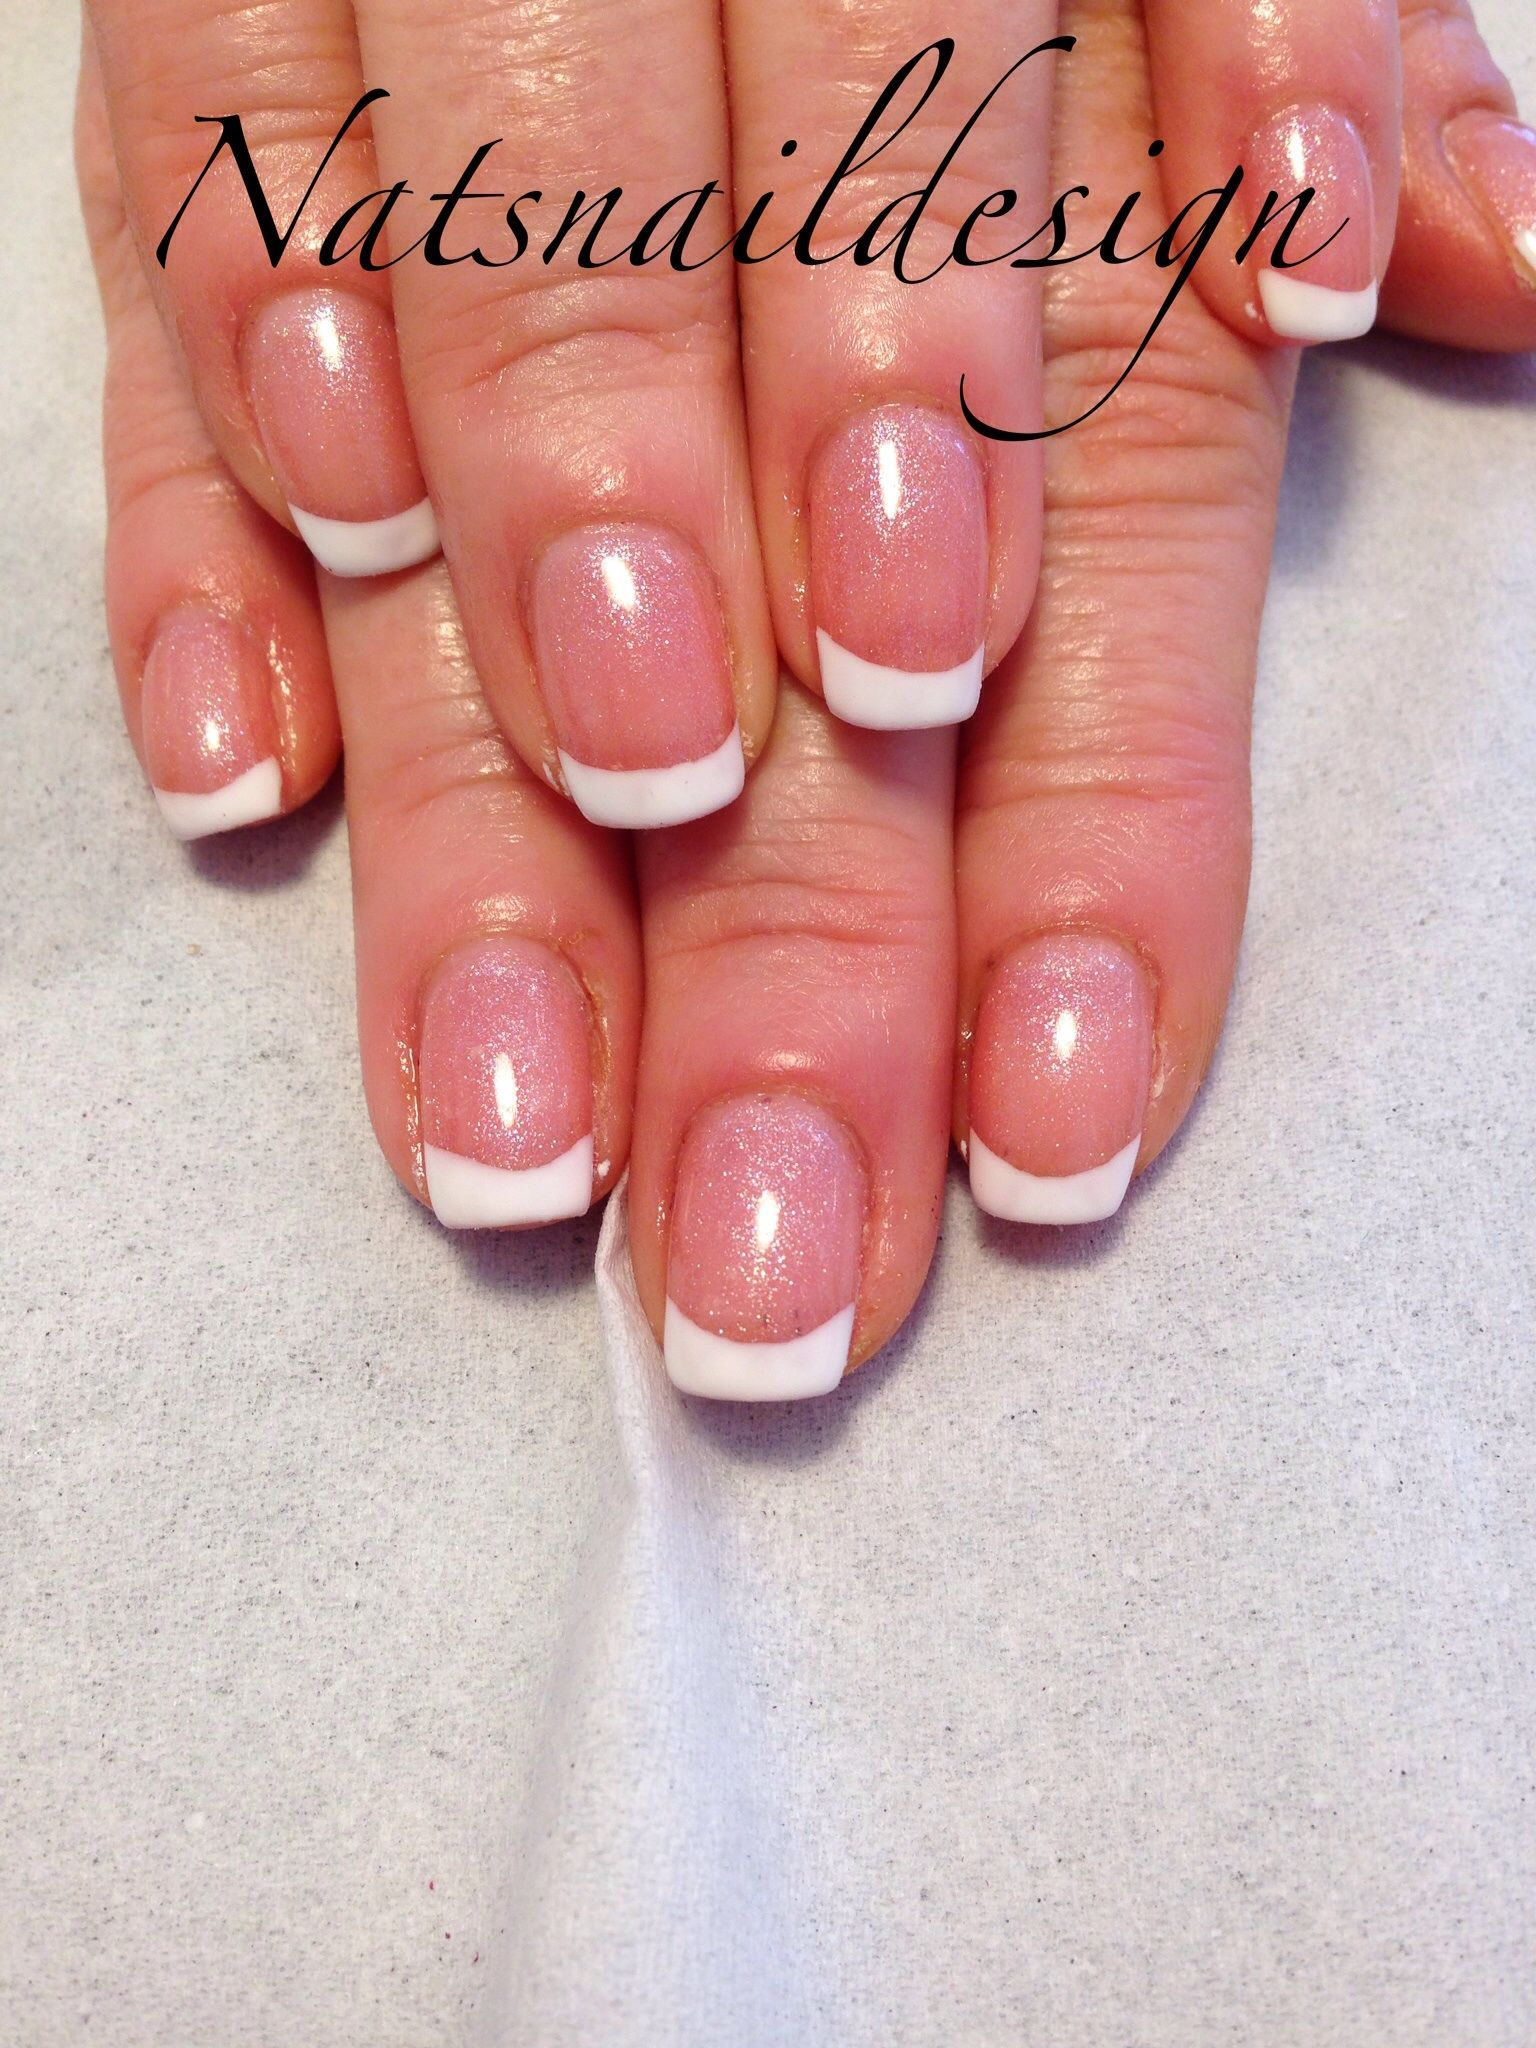 French manicure on natural nails | Beautiful nails | Pinterest ...